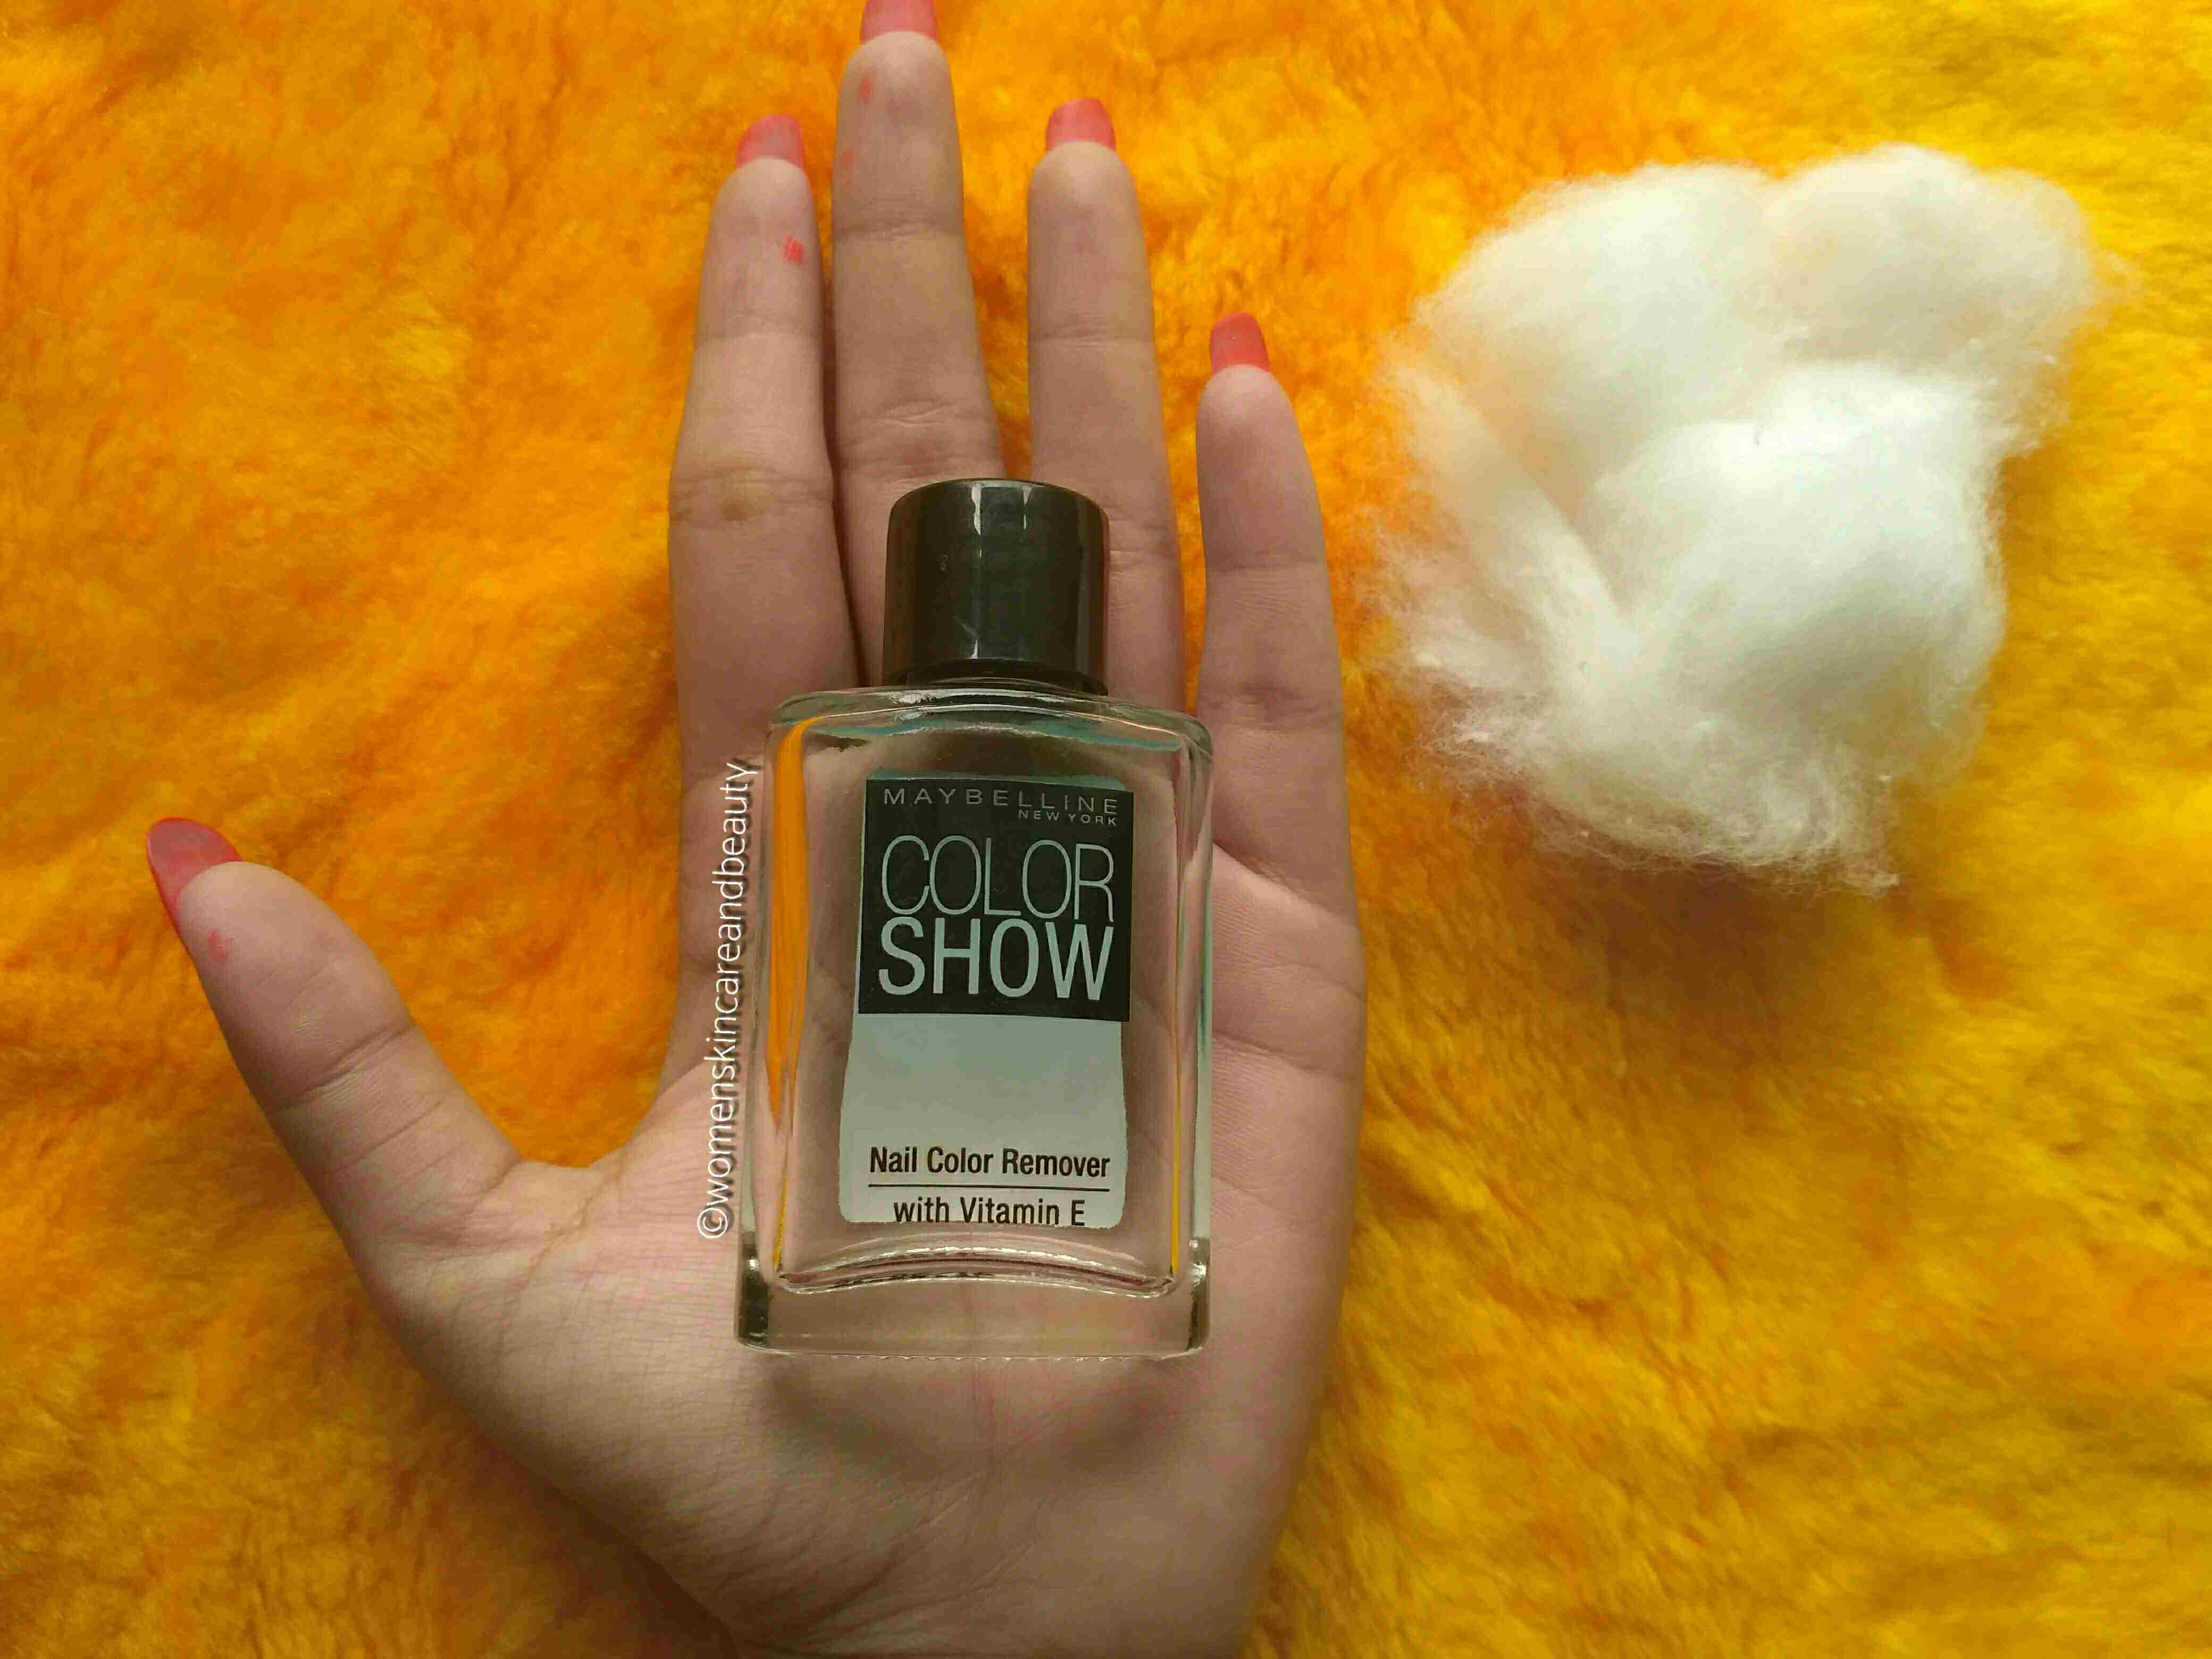 Maybelline Color Show Nail Color Remover